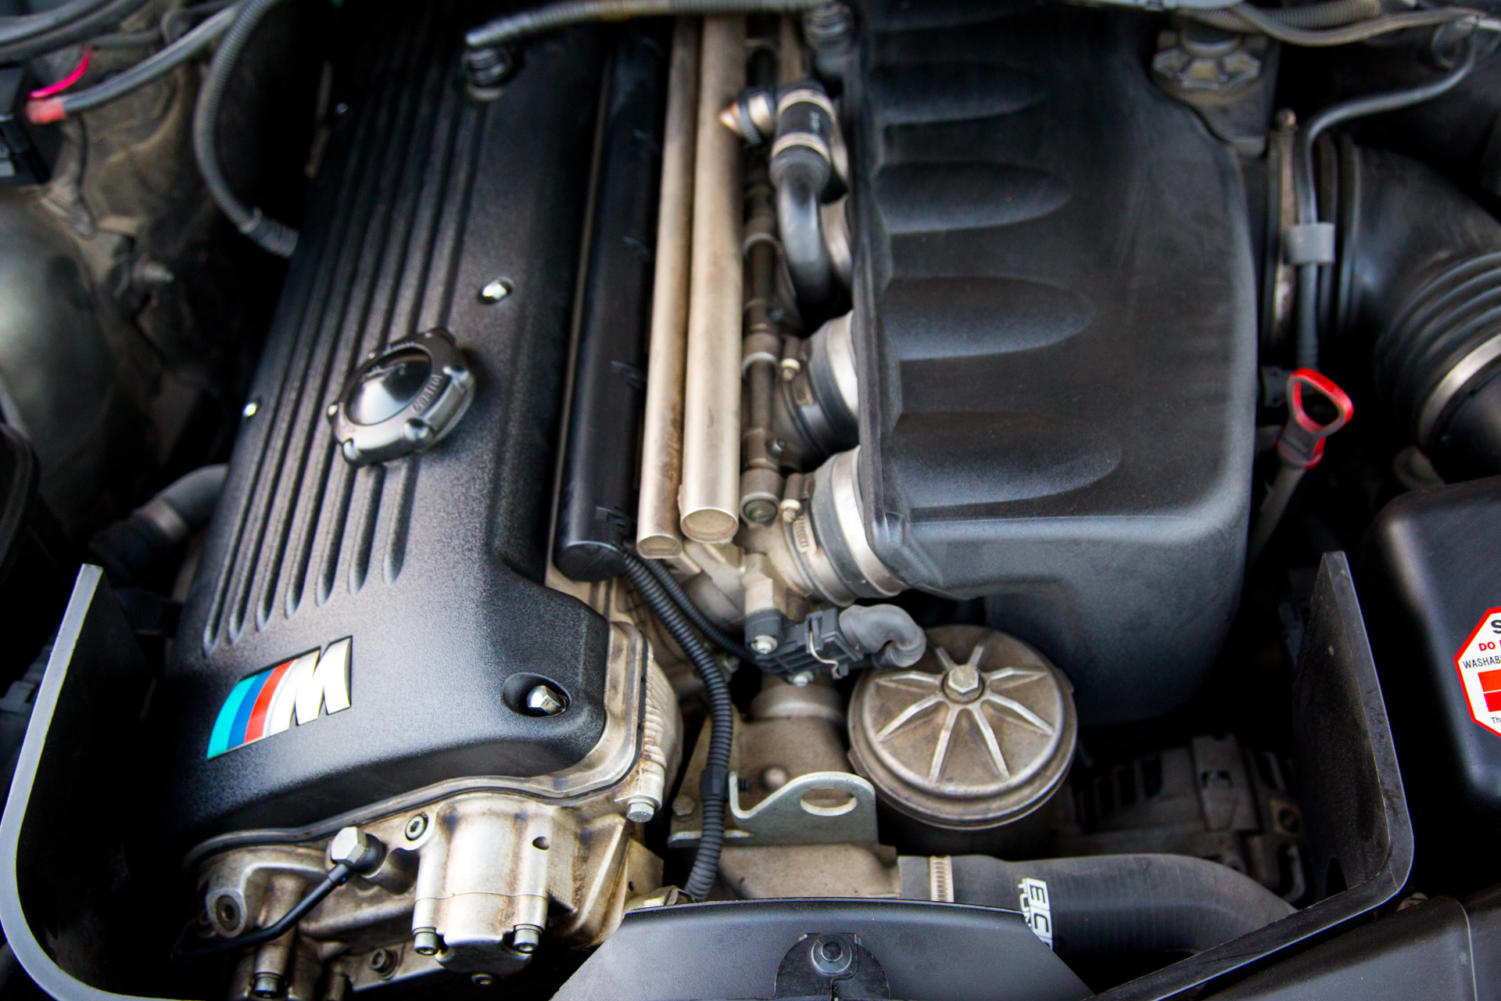 Khodr%E2%80%99s+car+is+close+to+14+years+old+but+still+in+excellent+condition.+The+car+still+has+its+original+naturally+aspirated+straight-six+engine.+%E2%80%9CThe+engine+is+the+best+part+about+this+car+because+of+how+powerful+it+is+and+how+wonderful+it+sounds%2C%E2%80%9D+he+said.